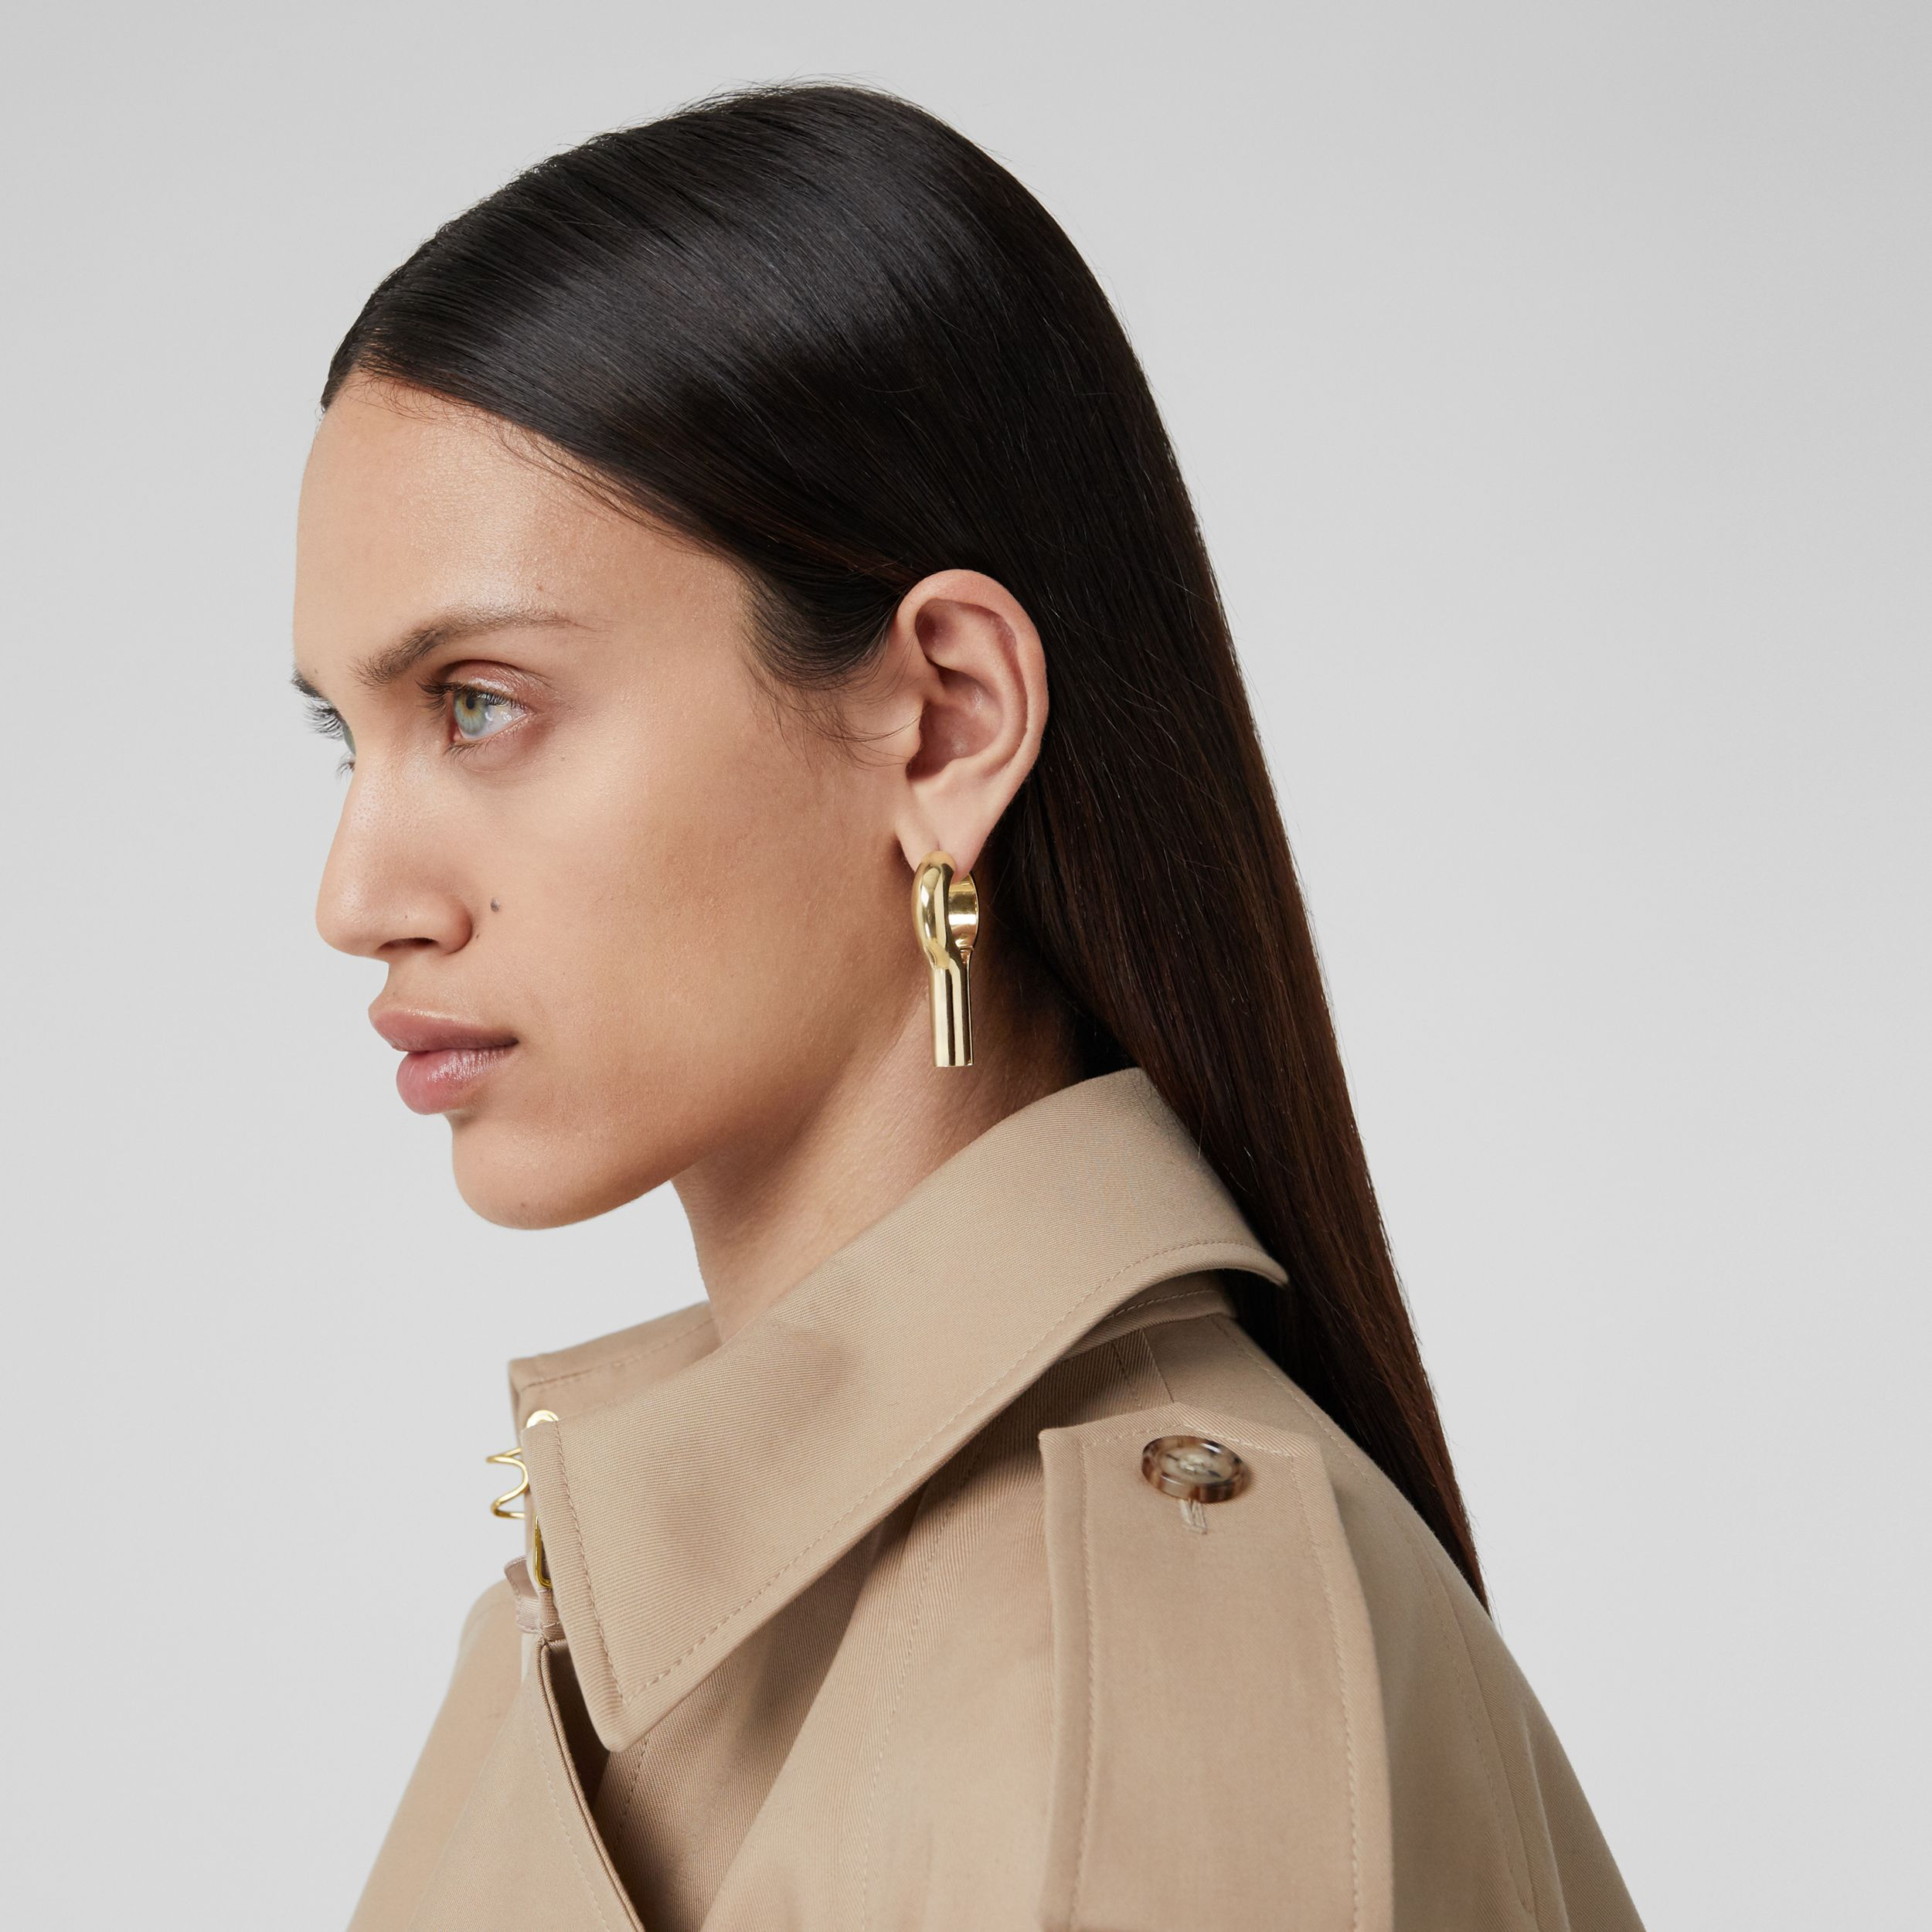 Gold-plated Keyhole Earrings in Light - Women | Burberry - 3